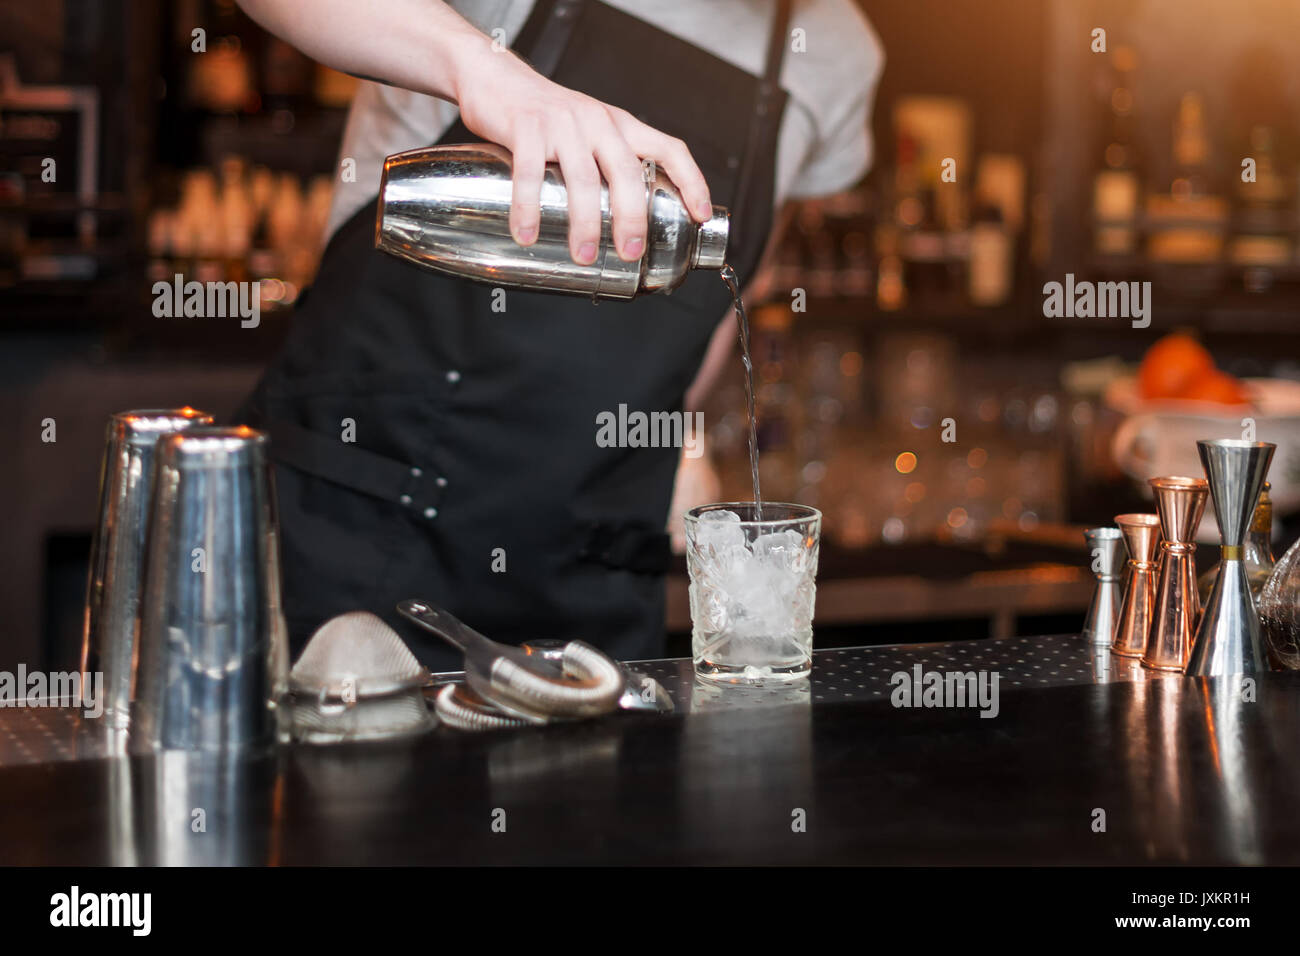 Barmann-Show. Im Night Club macht Barkeeper cocktail. Stockbild